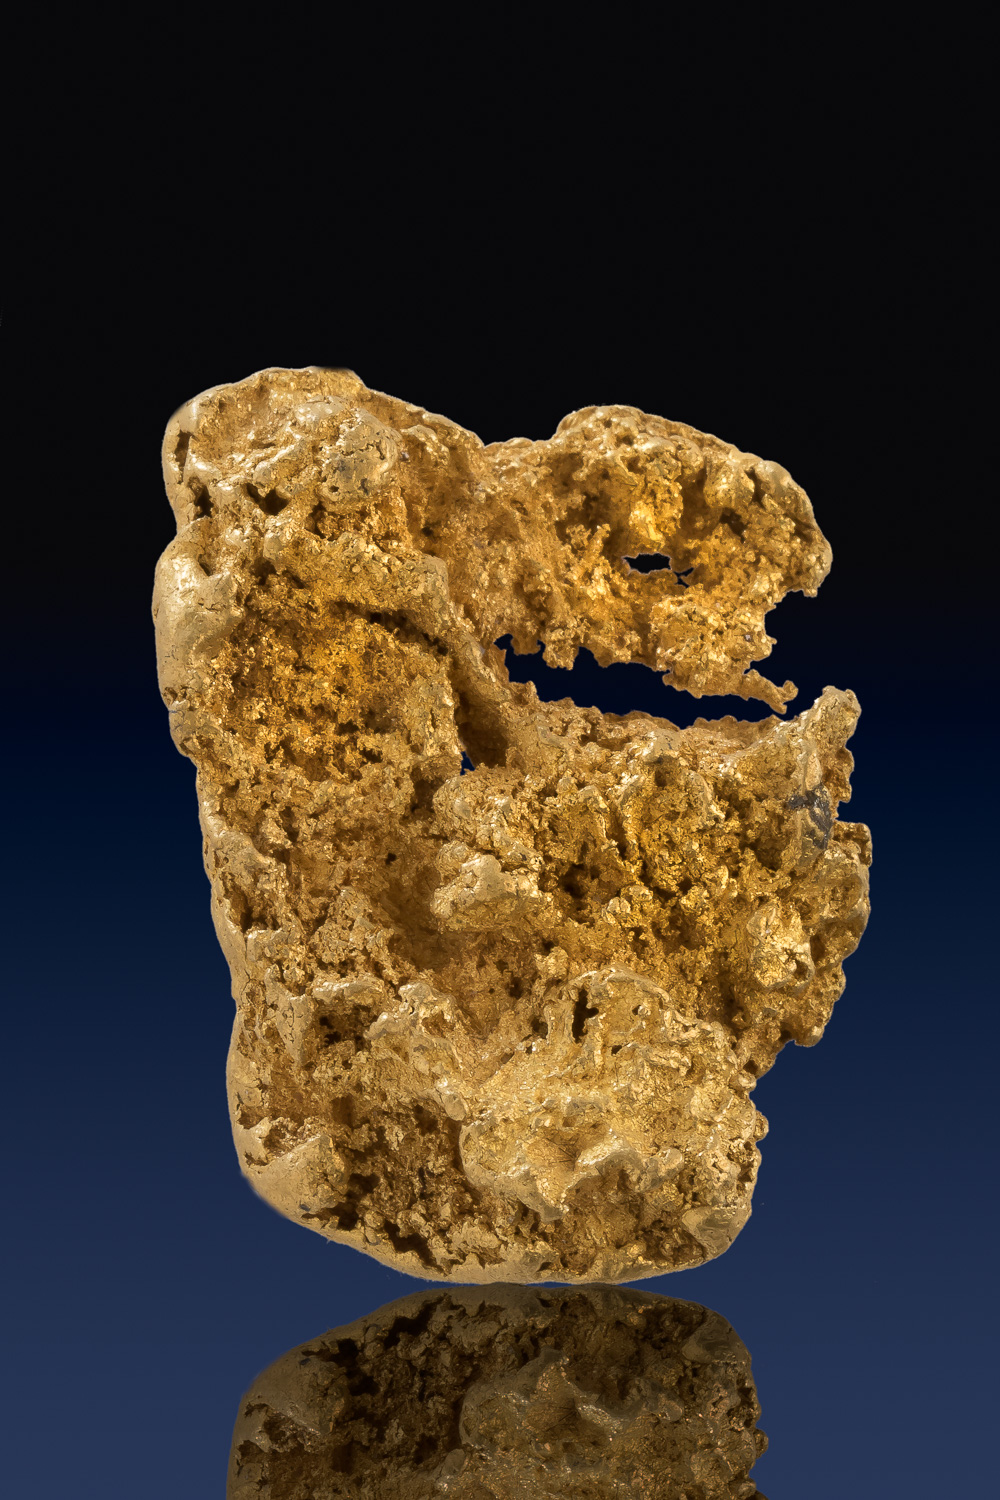 Crusty and Intricate Large Sonora, Mexico Gold Nugget